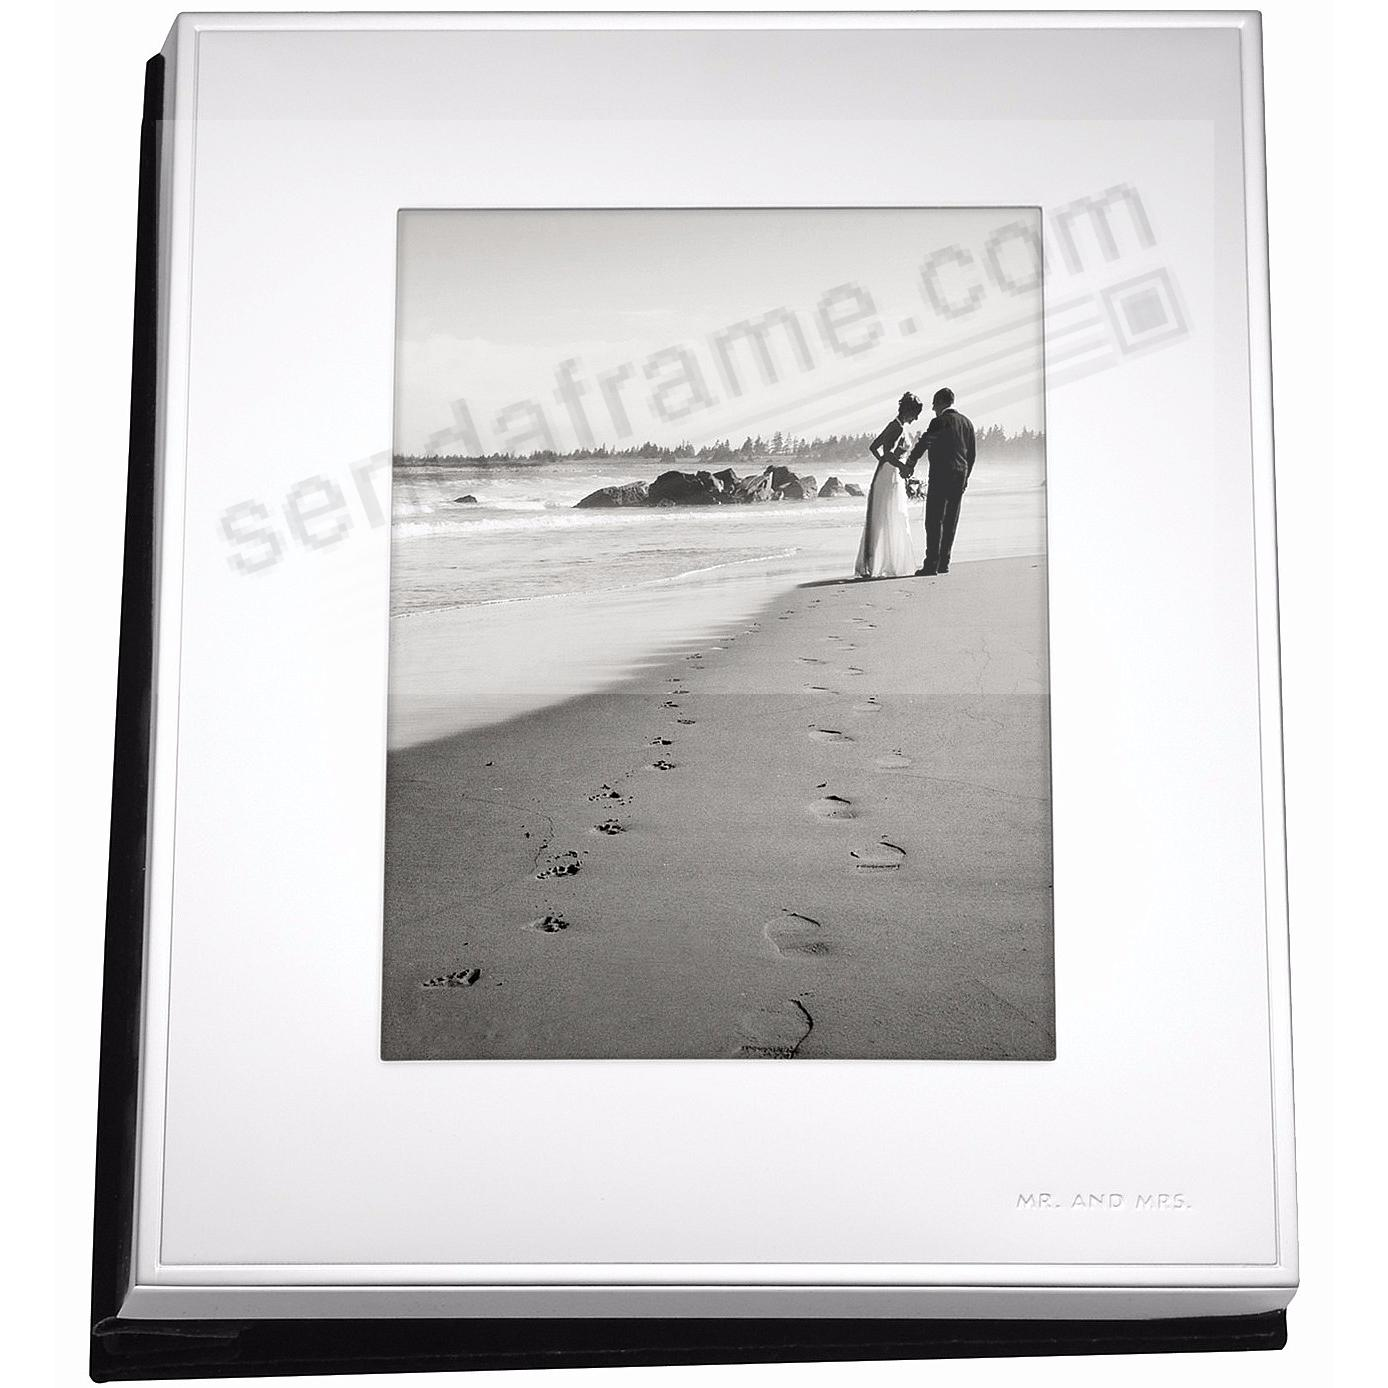 MR. AND MRS. Album for 4x6 prints by kate spade new york®